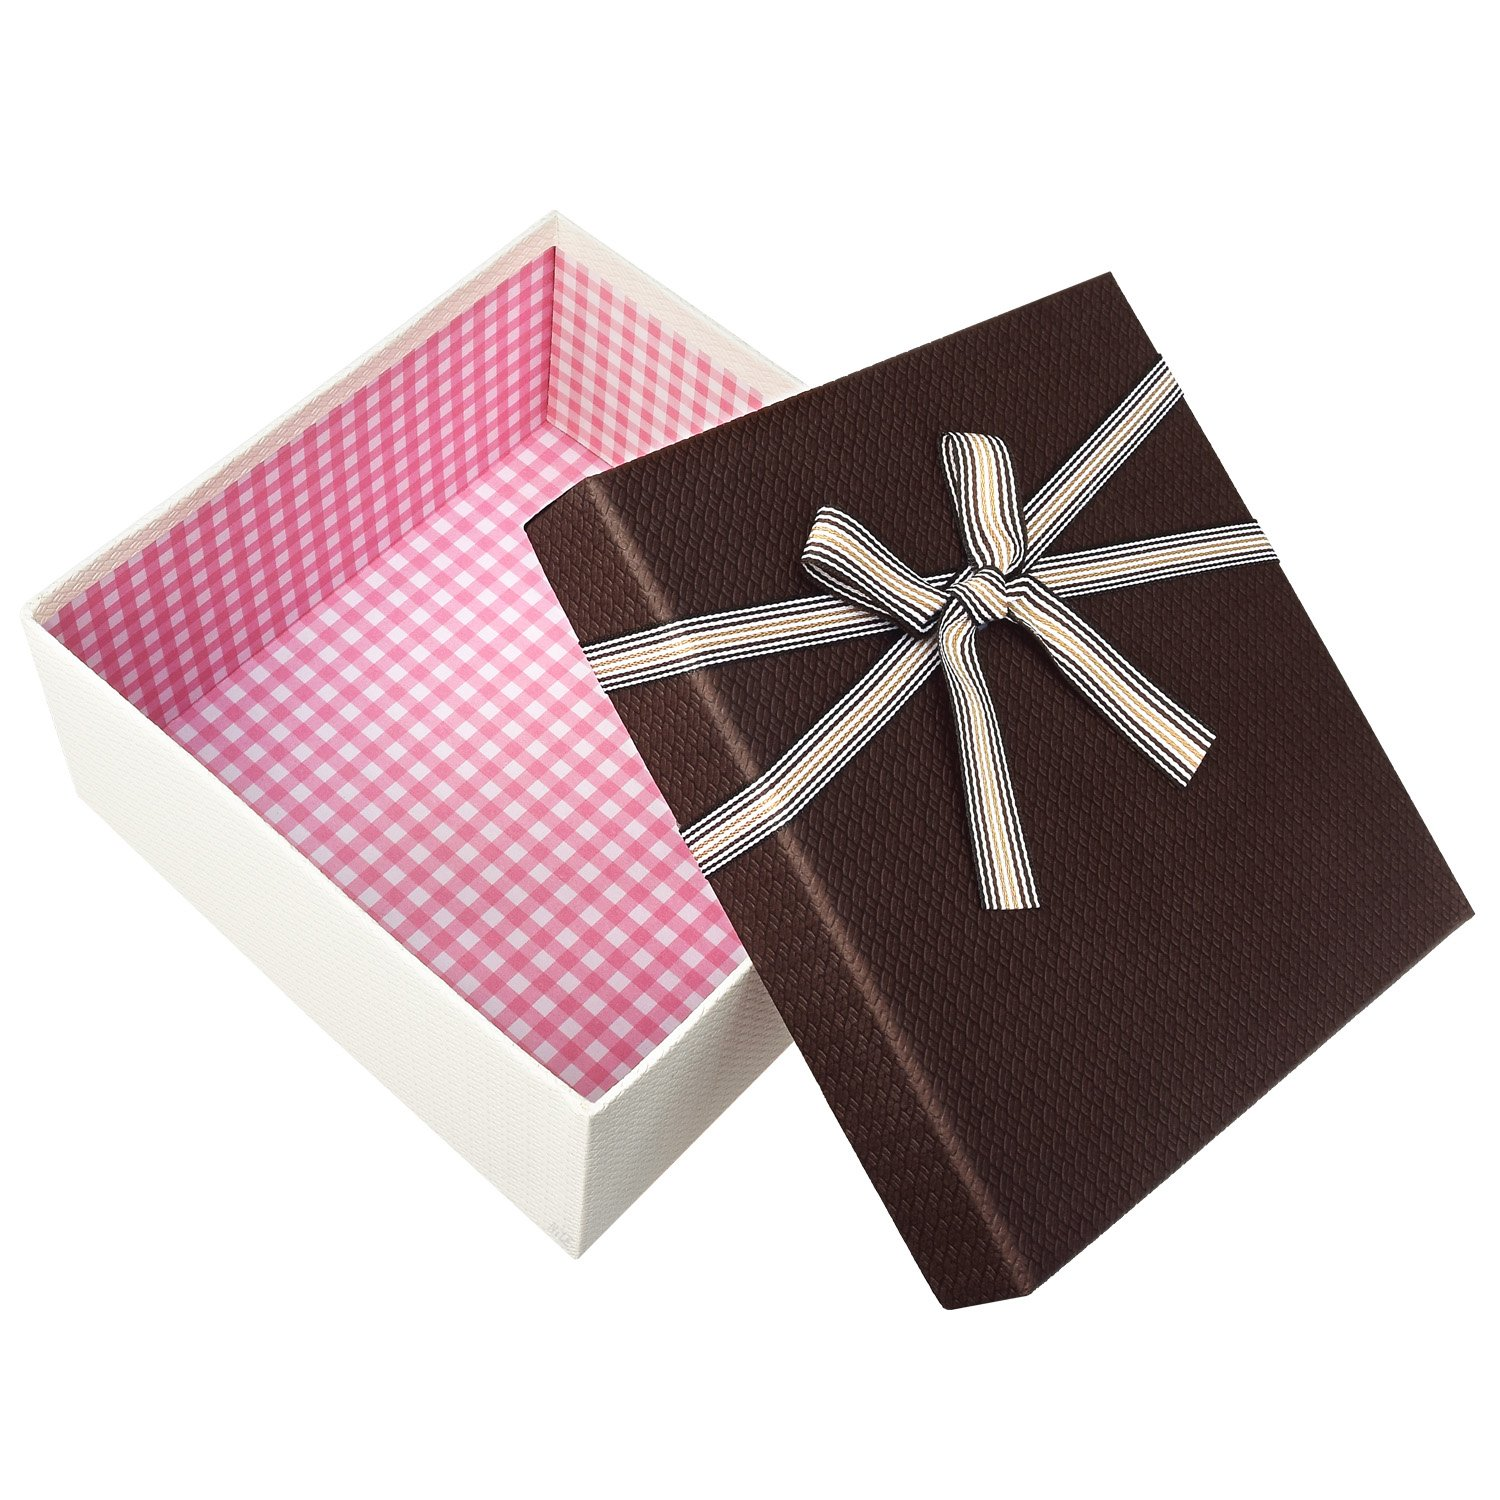 Square Nesting Gift Boxes, A Set of 3,Brown Color with A Bowtie by Ikee Design (Image #6)